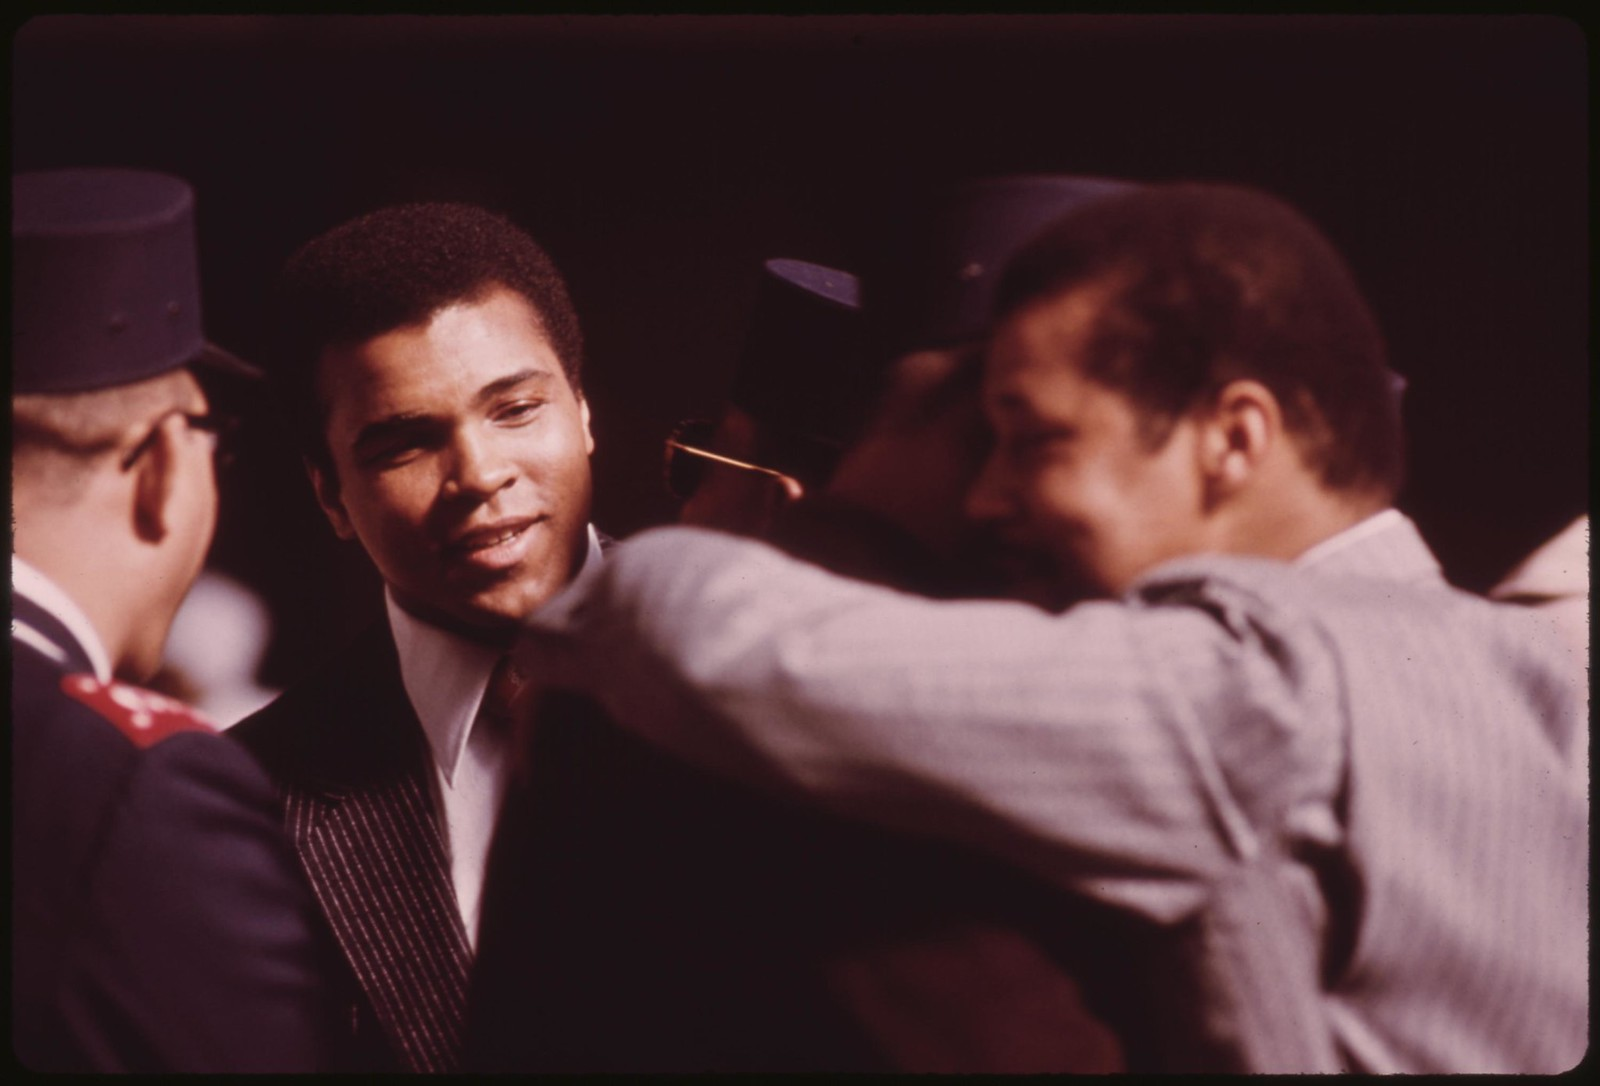 World Heavyweight Boxing Champion Muhammad Ali, A Black Muslim, Attends The Sect's Service To Hear Elijah Muhammad Deliver The Annual Savior's Day Message In Chicago, 03/1974 | by The U.S. National Archives